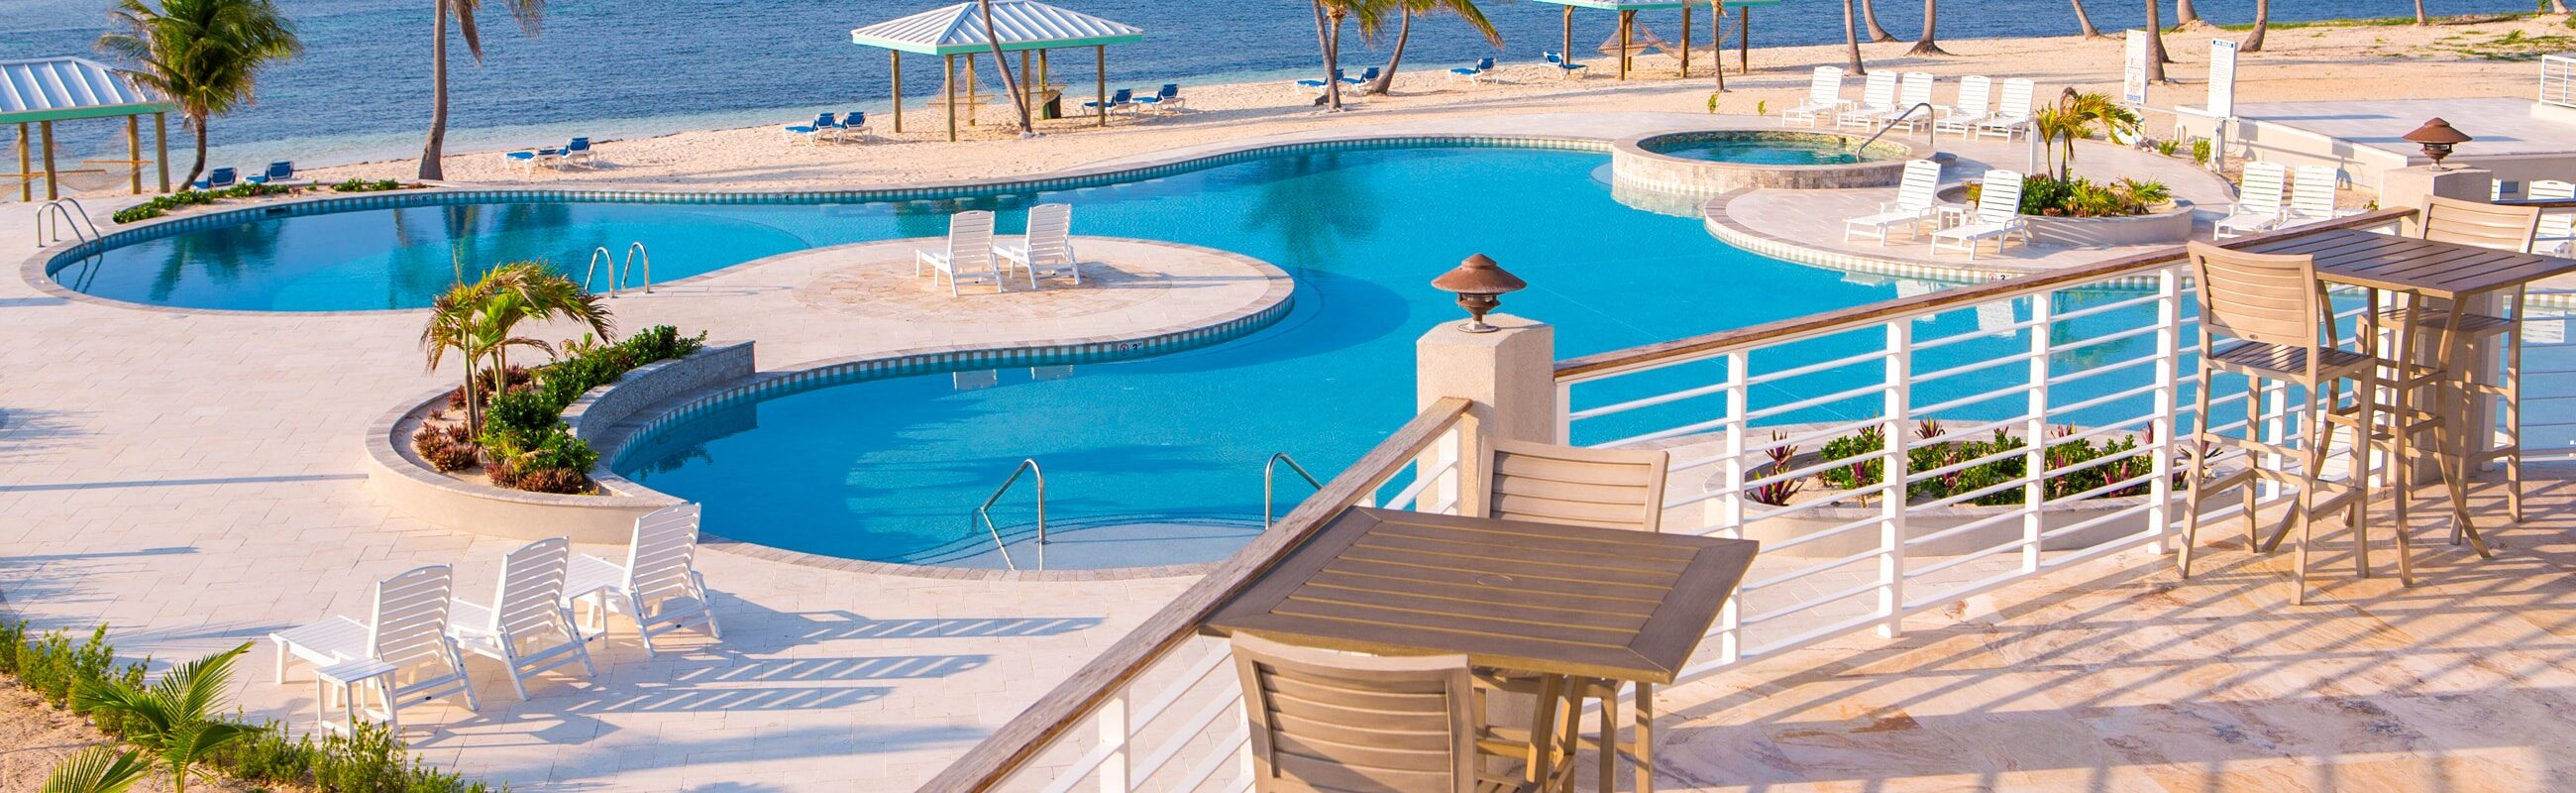 Water delights for everyone – our Caribbean beach with hammocks or our walk-in pool and jetted hot tub